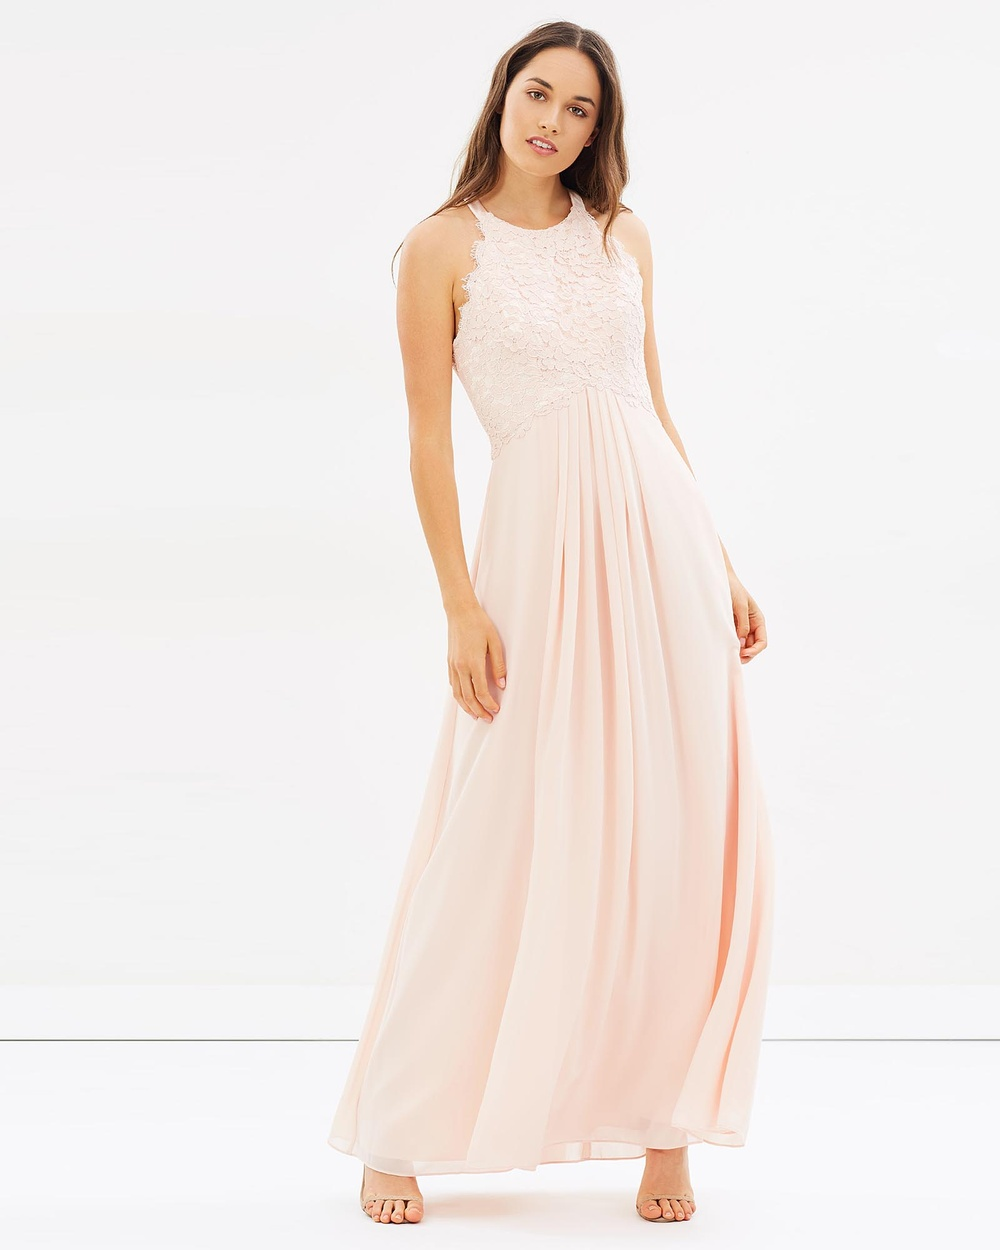 Alabaster The Label Graced by Lace Dress Bridesmaid Dresses Light Blush Pink Graced by Lace Dress